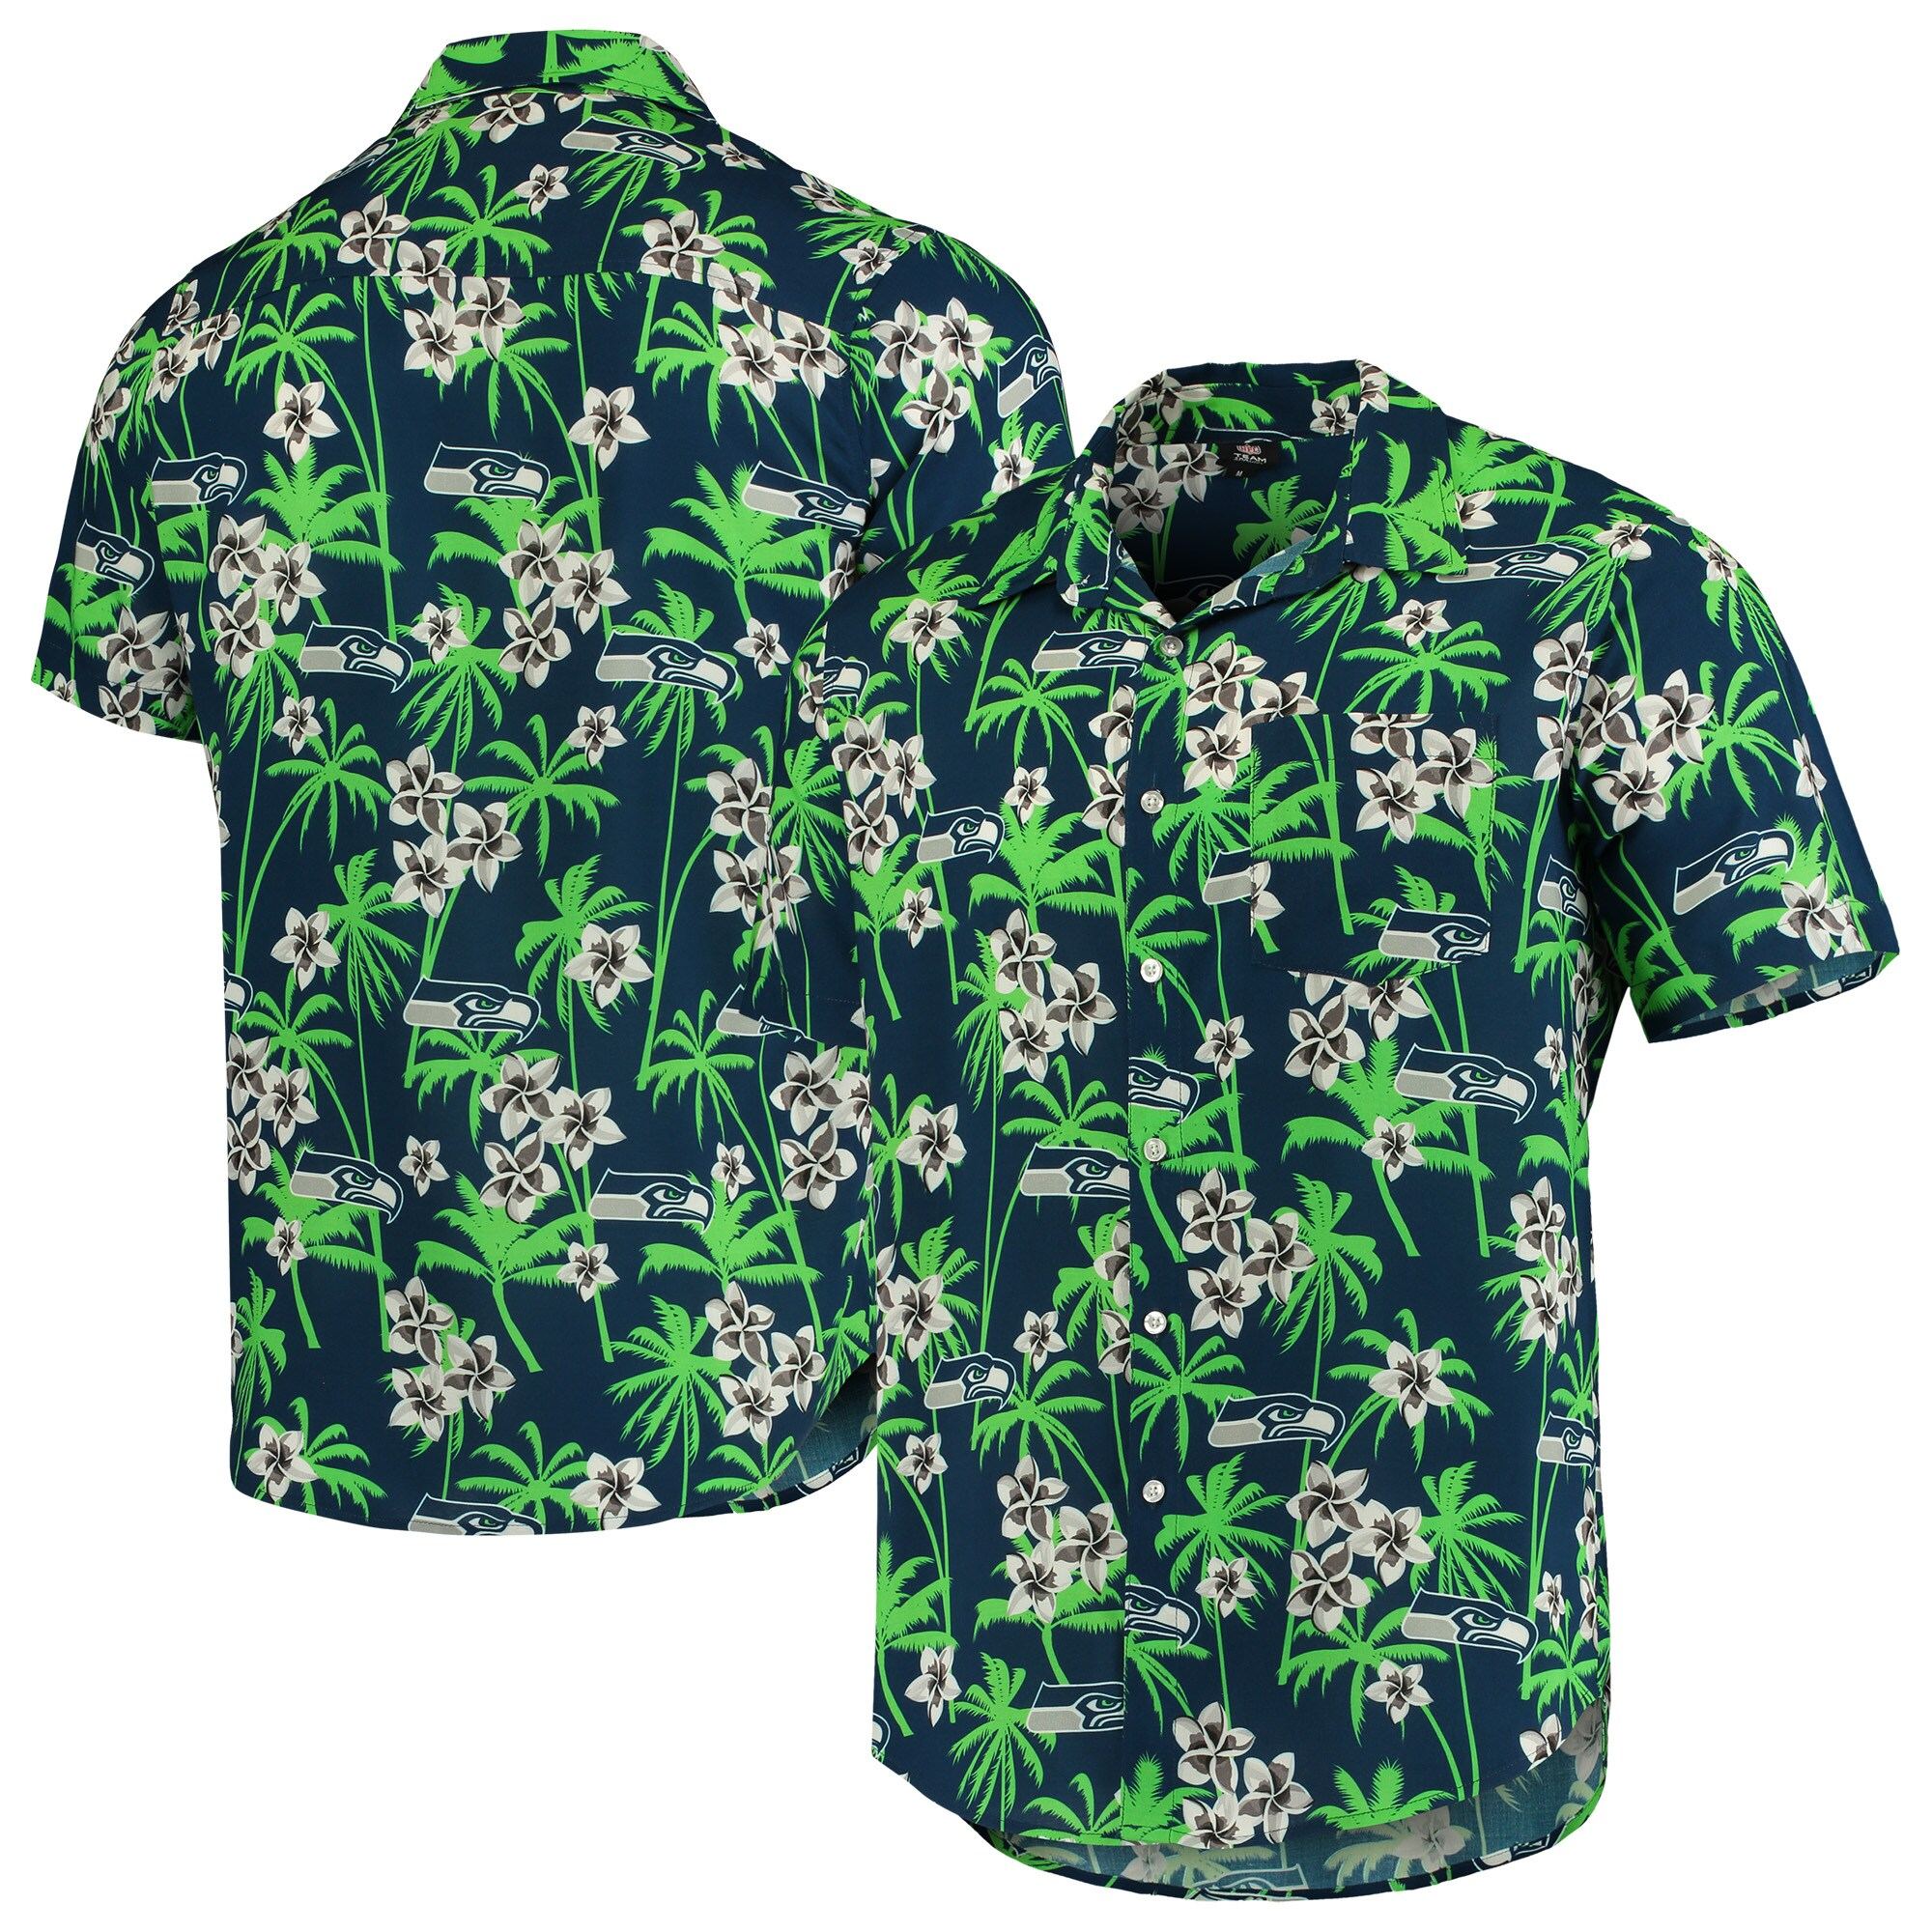 Seattle Seahawks Floral Woven Button-Up Shirt - College Navy